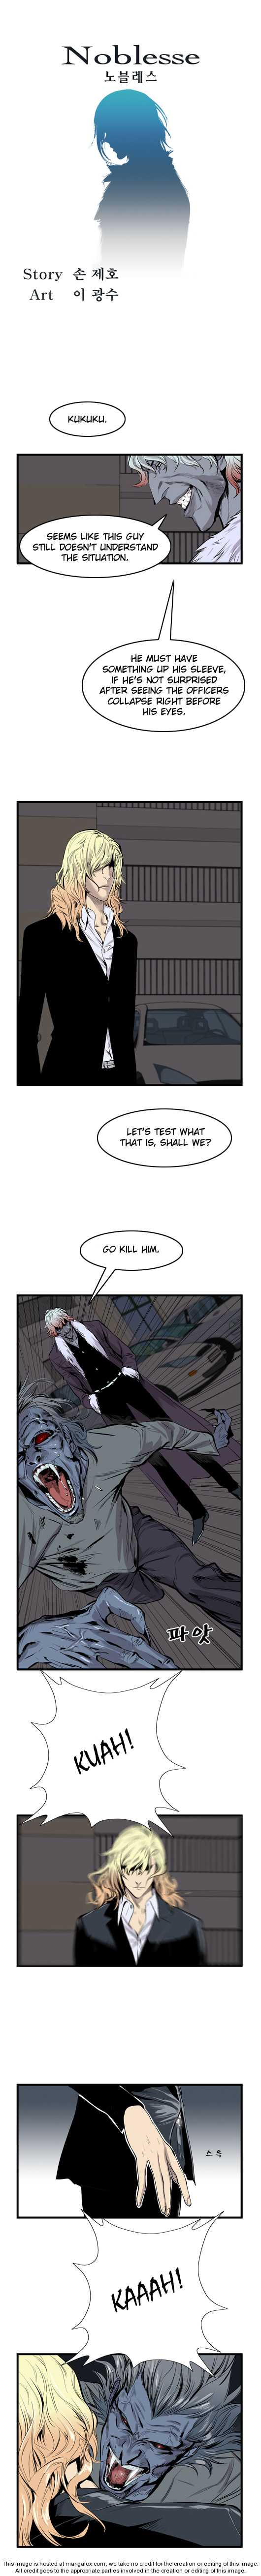 Noblesse 44 Page 1